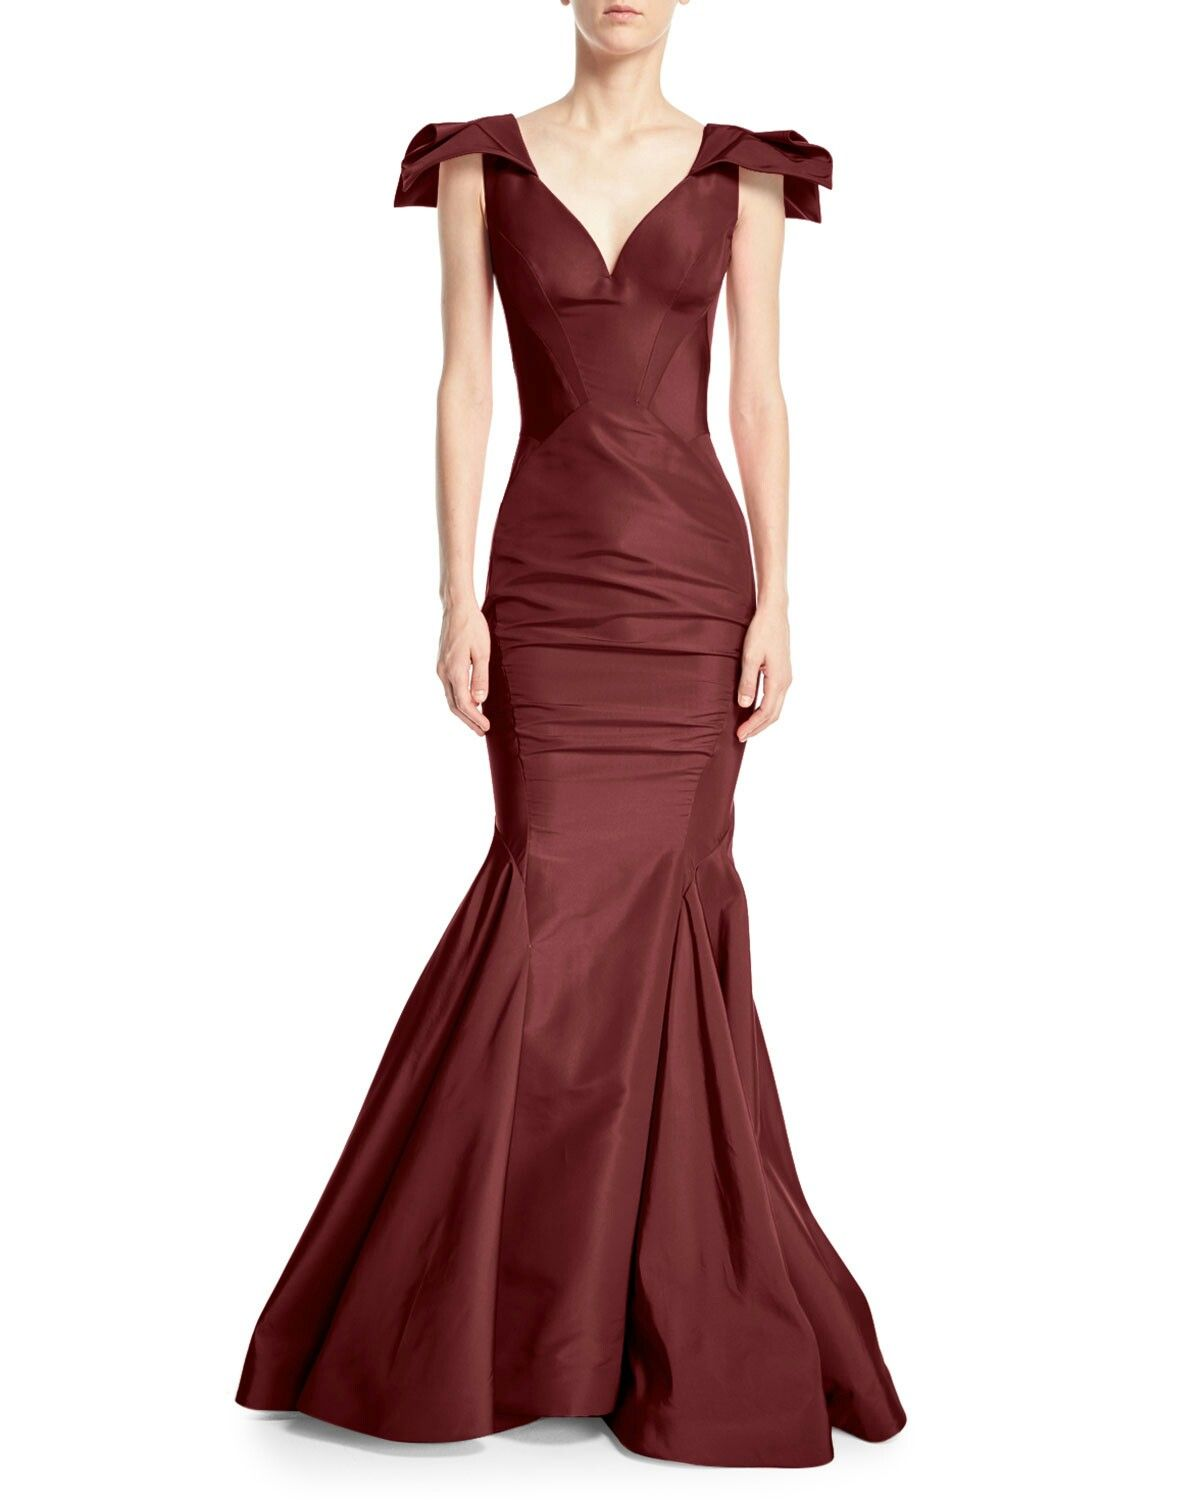 Pin by Sheba on to pack | Pinterest | Formal wear, Evening party and ...